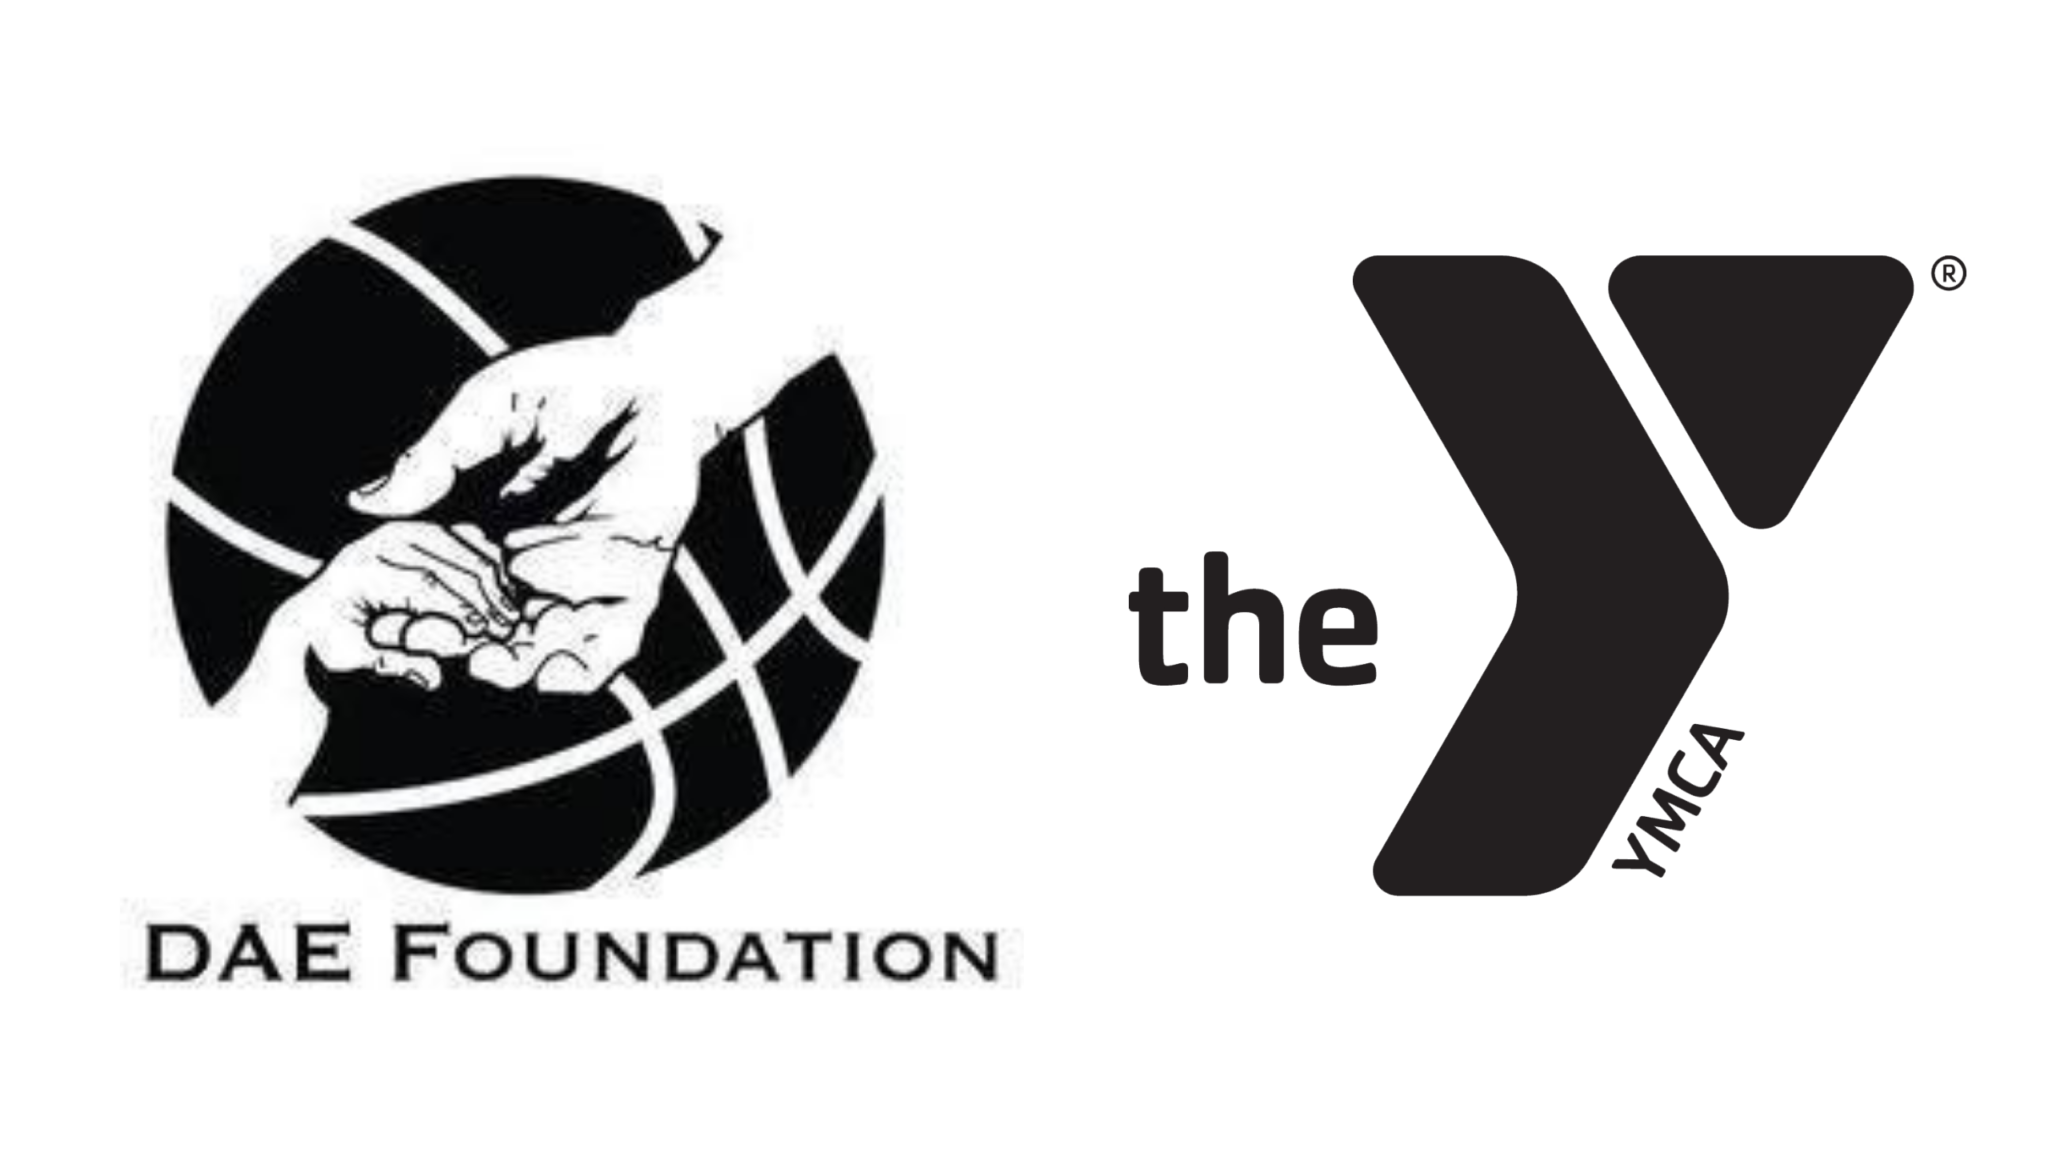 Cane Bay YMCA Back to School Drive and DAE Foundation Basketball Clinic @ Cane Bay YMCA | Summerville | South Carolina | United States